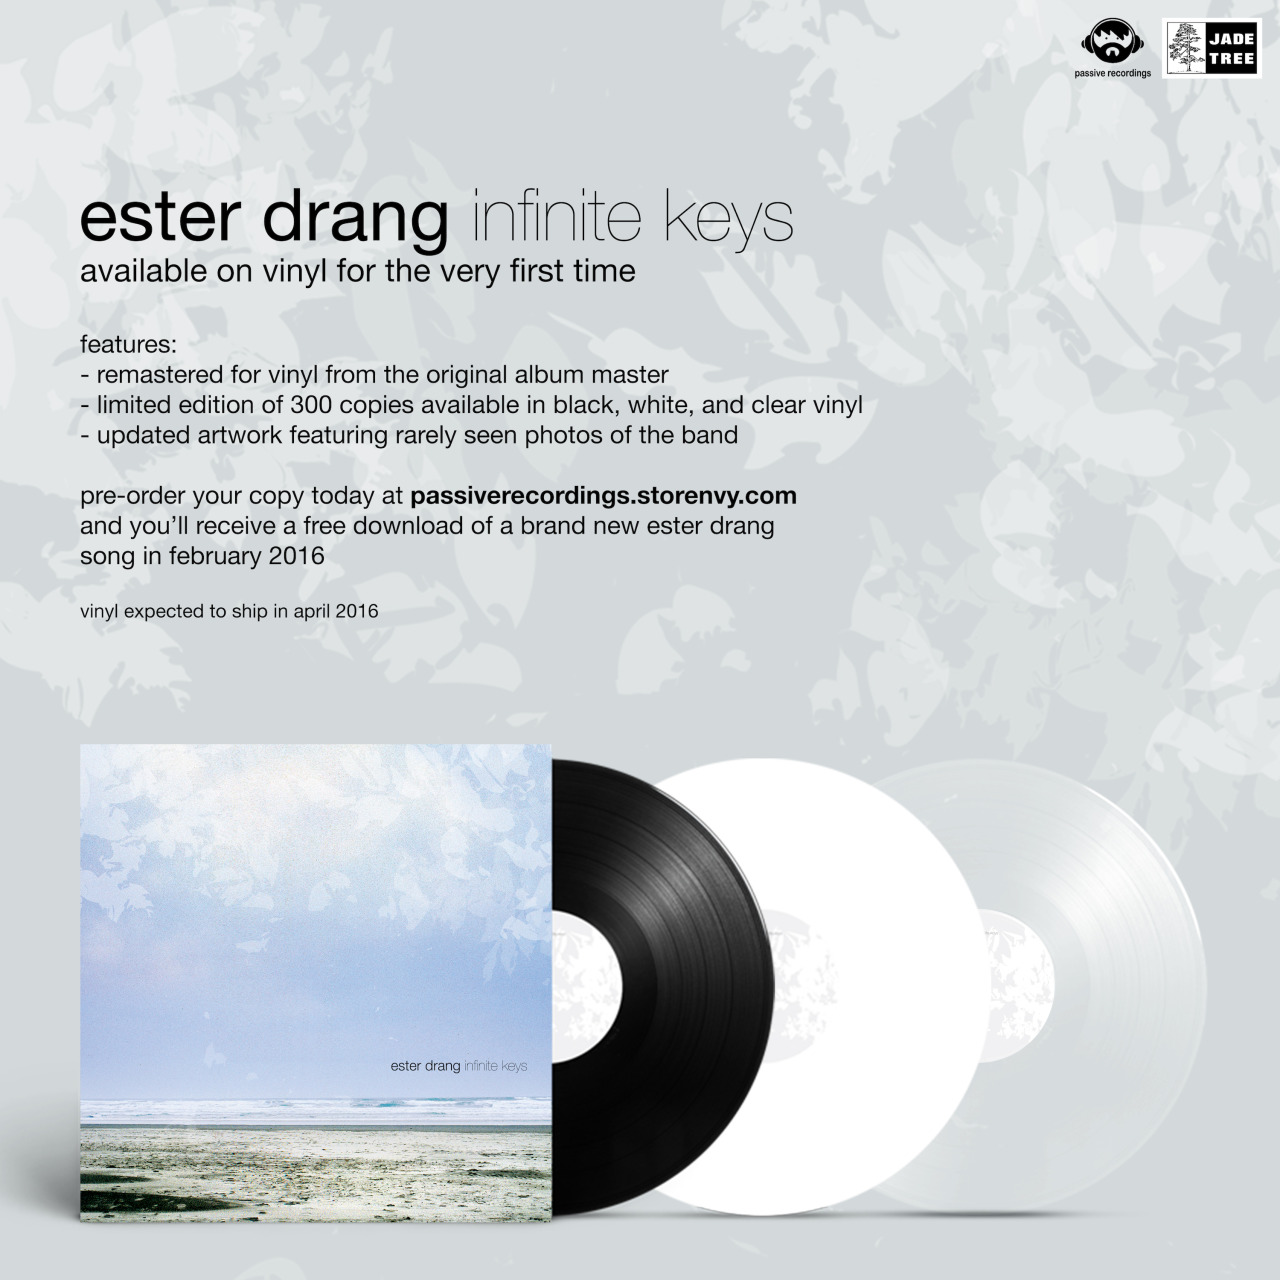 Passive Recordings  is pressing  Ester Drang 's'Infinite Keys' to vinyl for the very first time. It's been remastered from the original tapes and the digital download includes a brand new Ester Drang song.  Pre-orders are available  here  and are expected to ship in April.